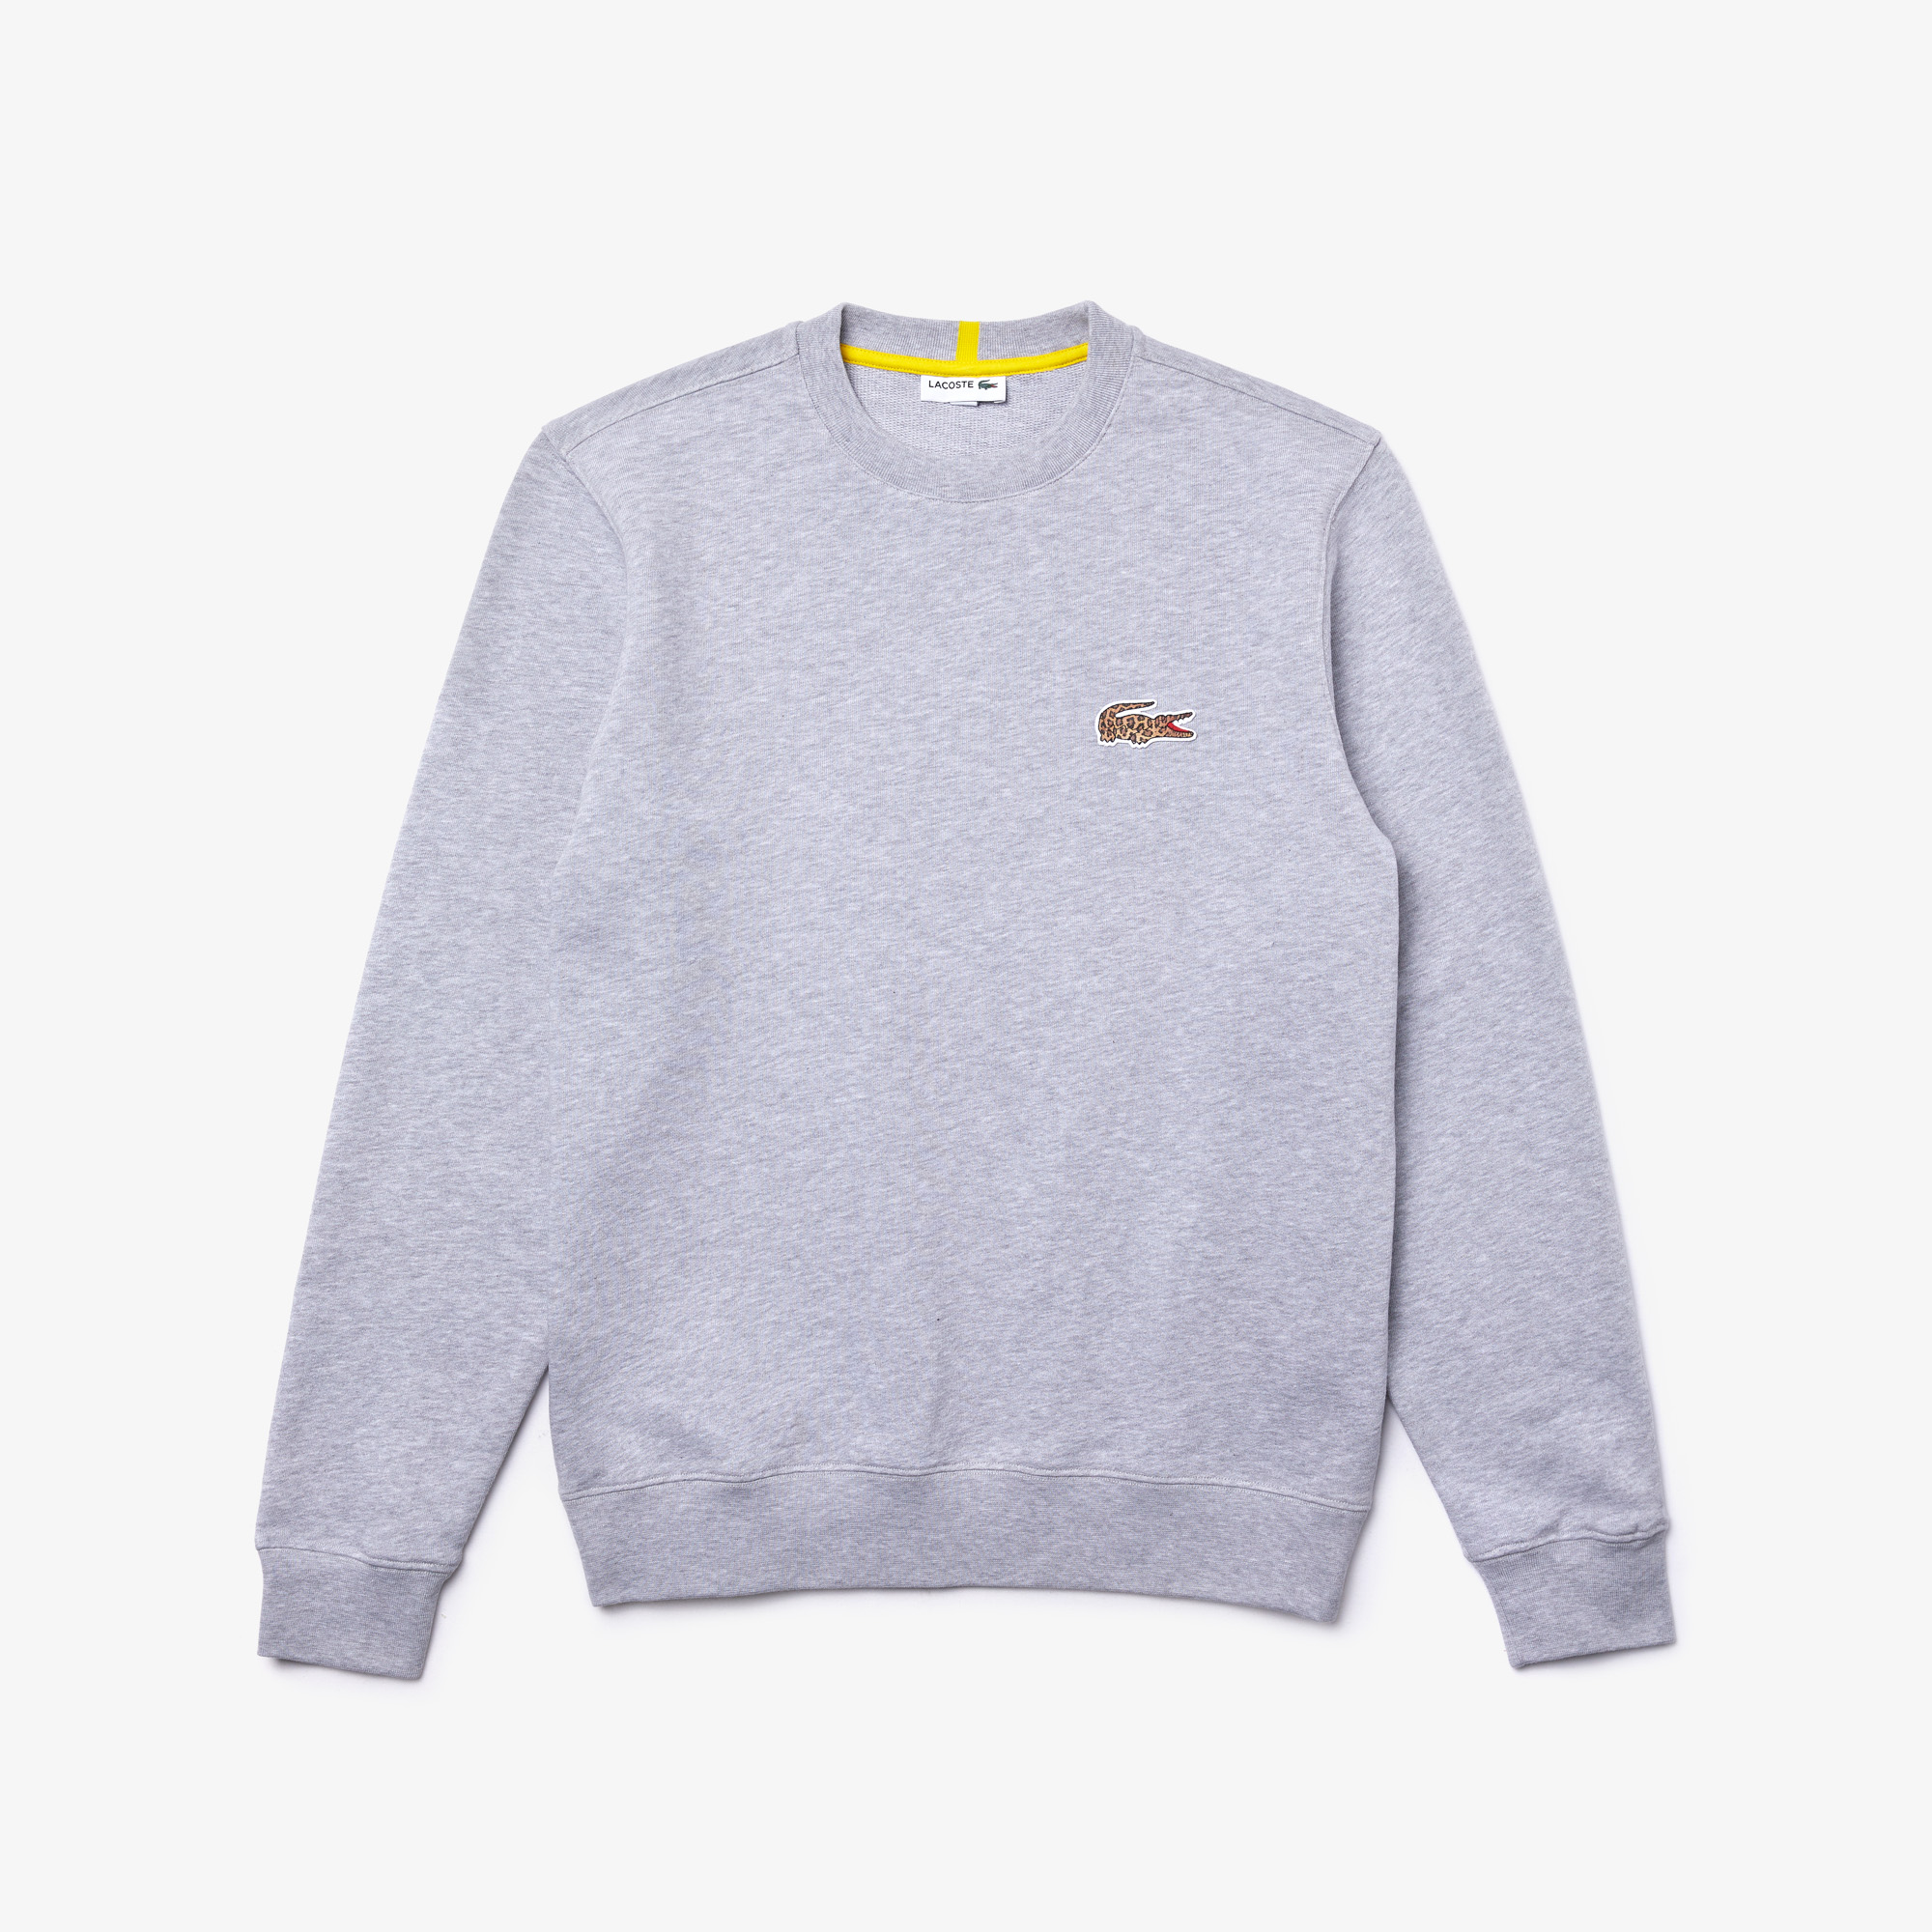 Lacoste Gift Image